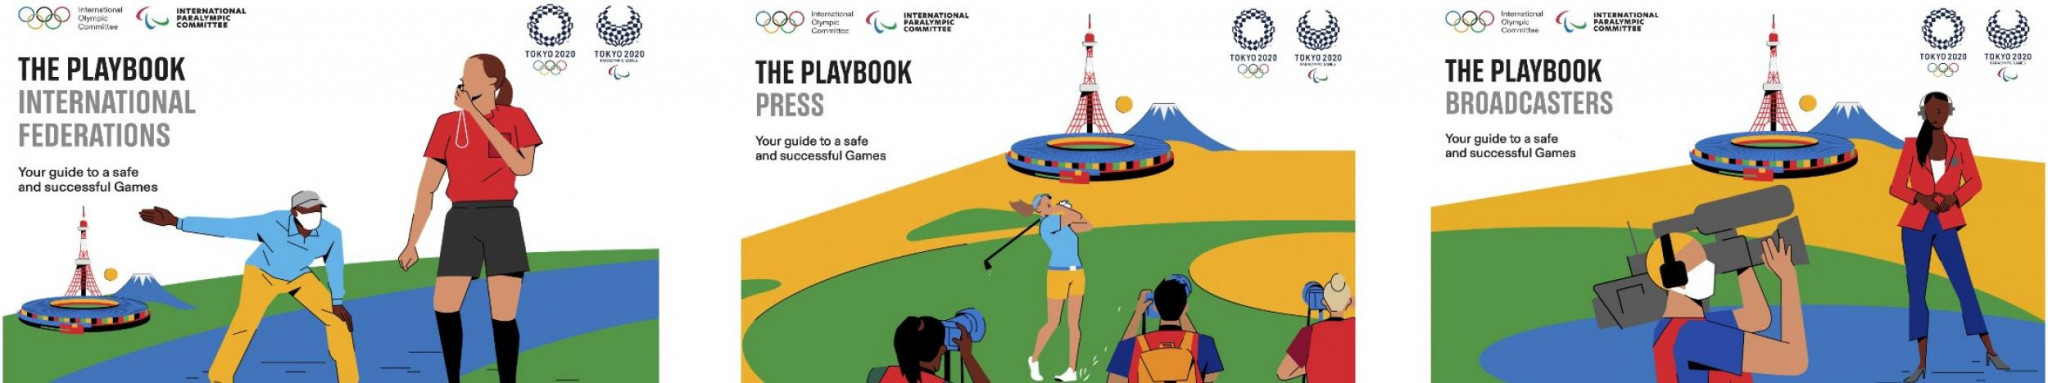 Details of the Tokyo 2020 playbooks released earlier this month were discussed at today's virtual media briefing co-hosted by Lausanne and Tokyo ©Tokyo 2020